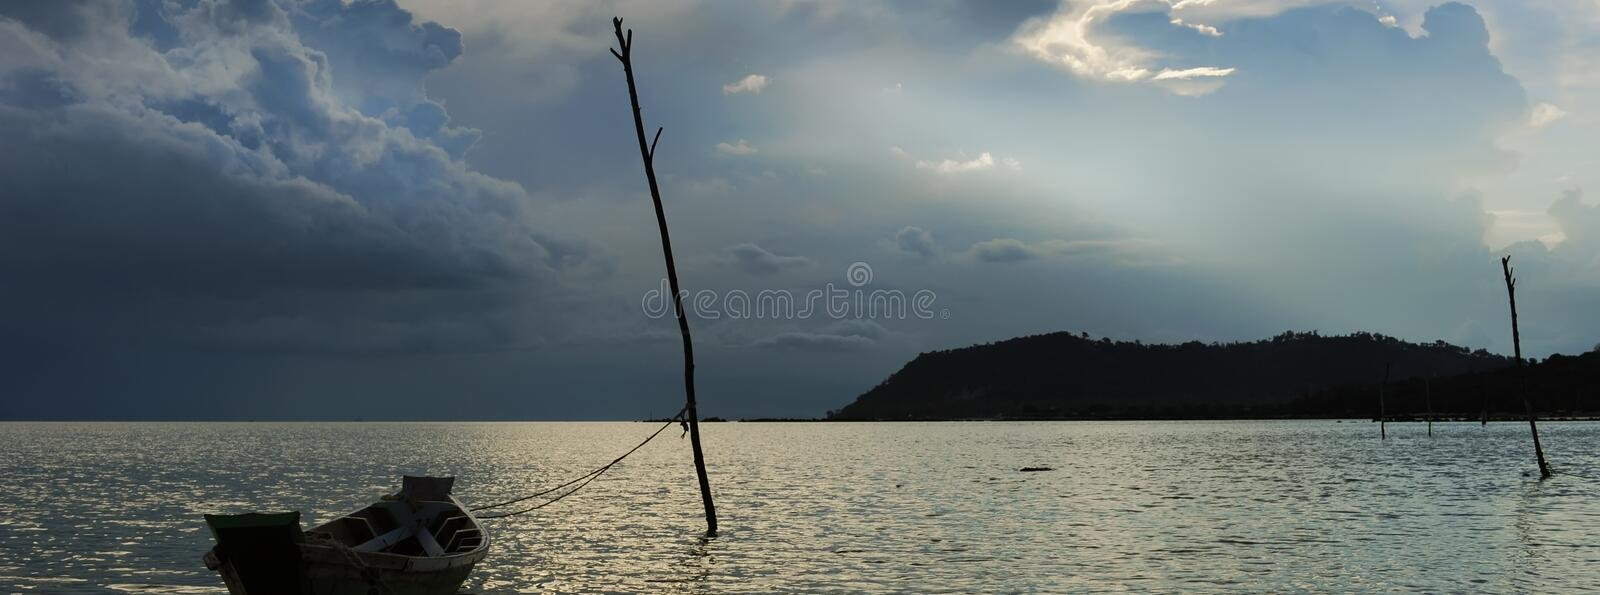 Stormy clouds over the sea, lonely boat silhouette in water, dramatic sky during sunset, no people. Tourism and travelling concept. Horizontal image, Samui royalty free stock images